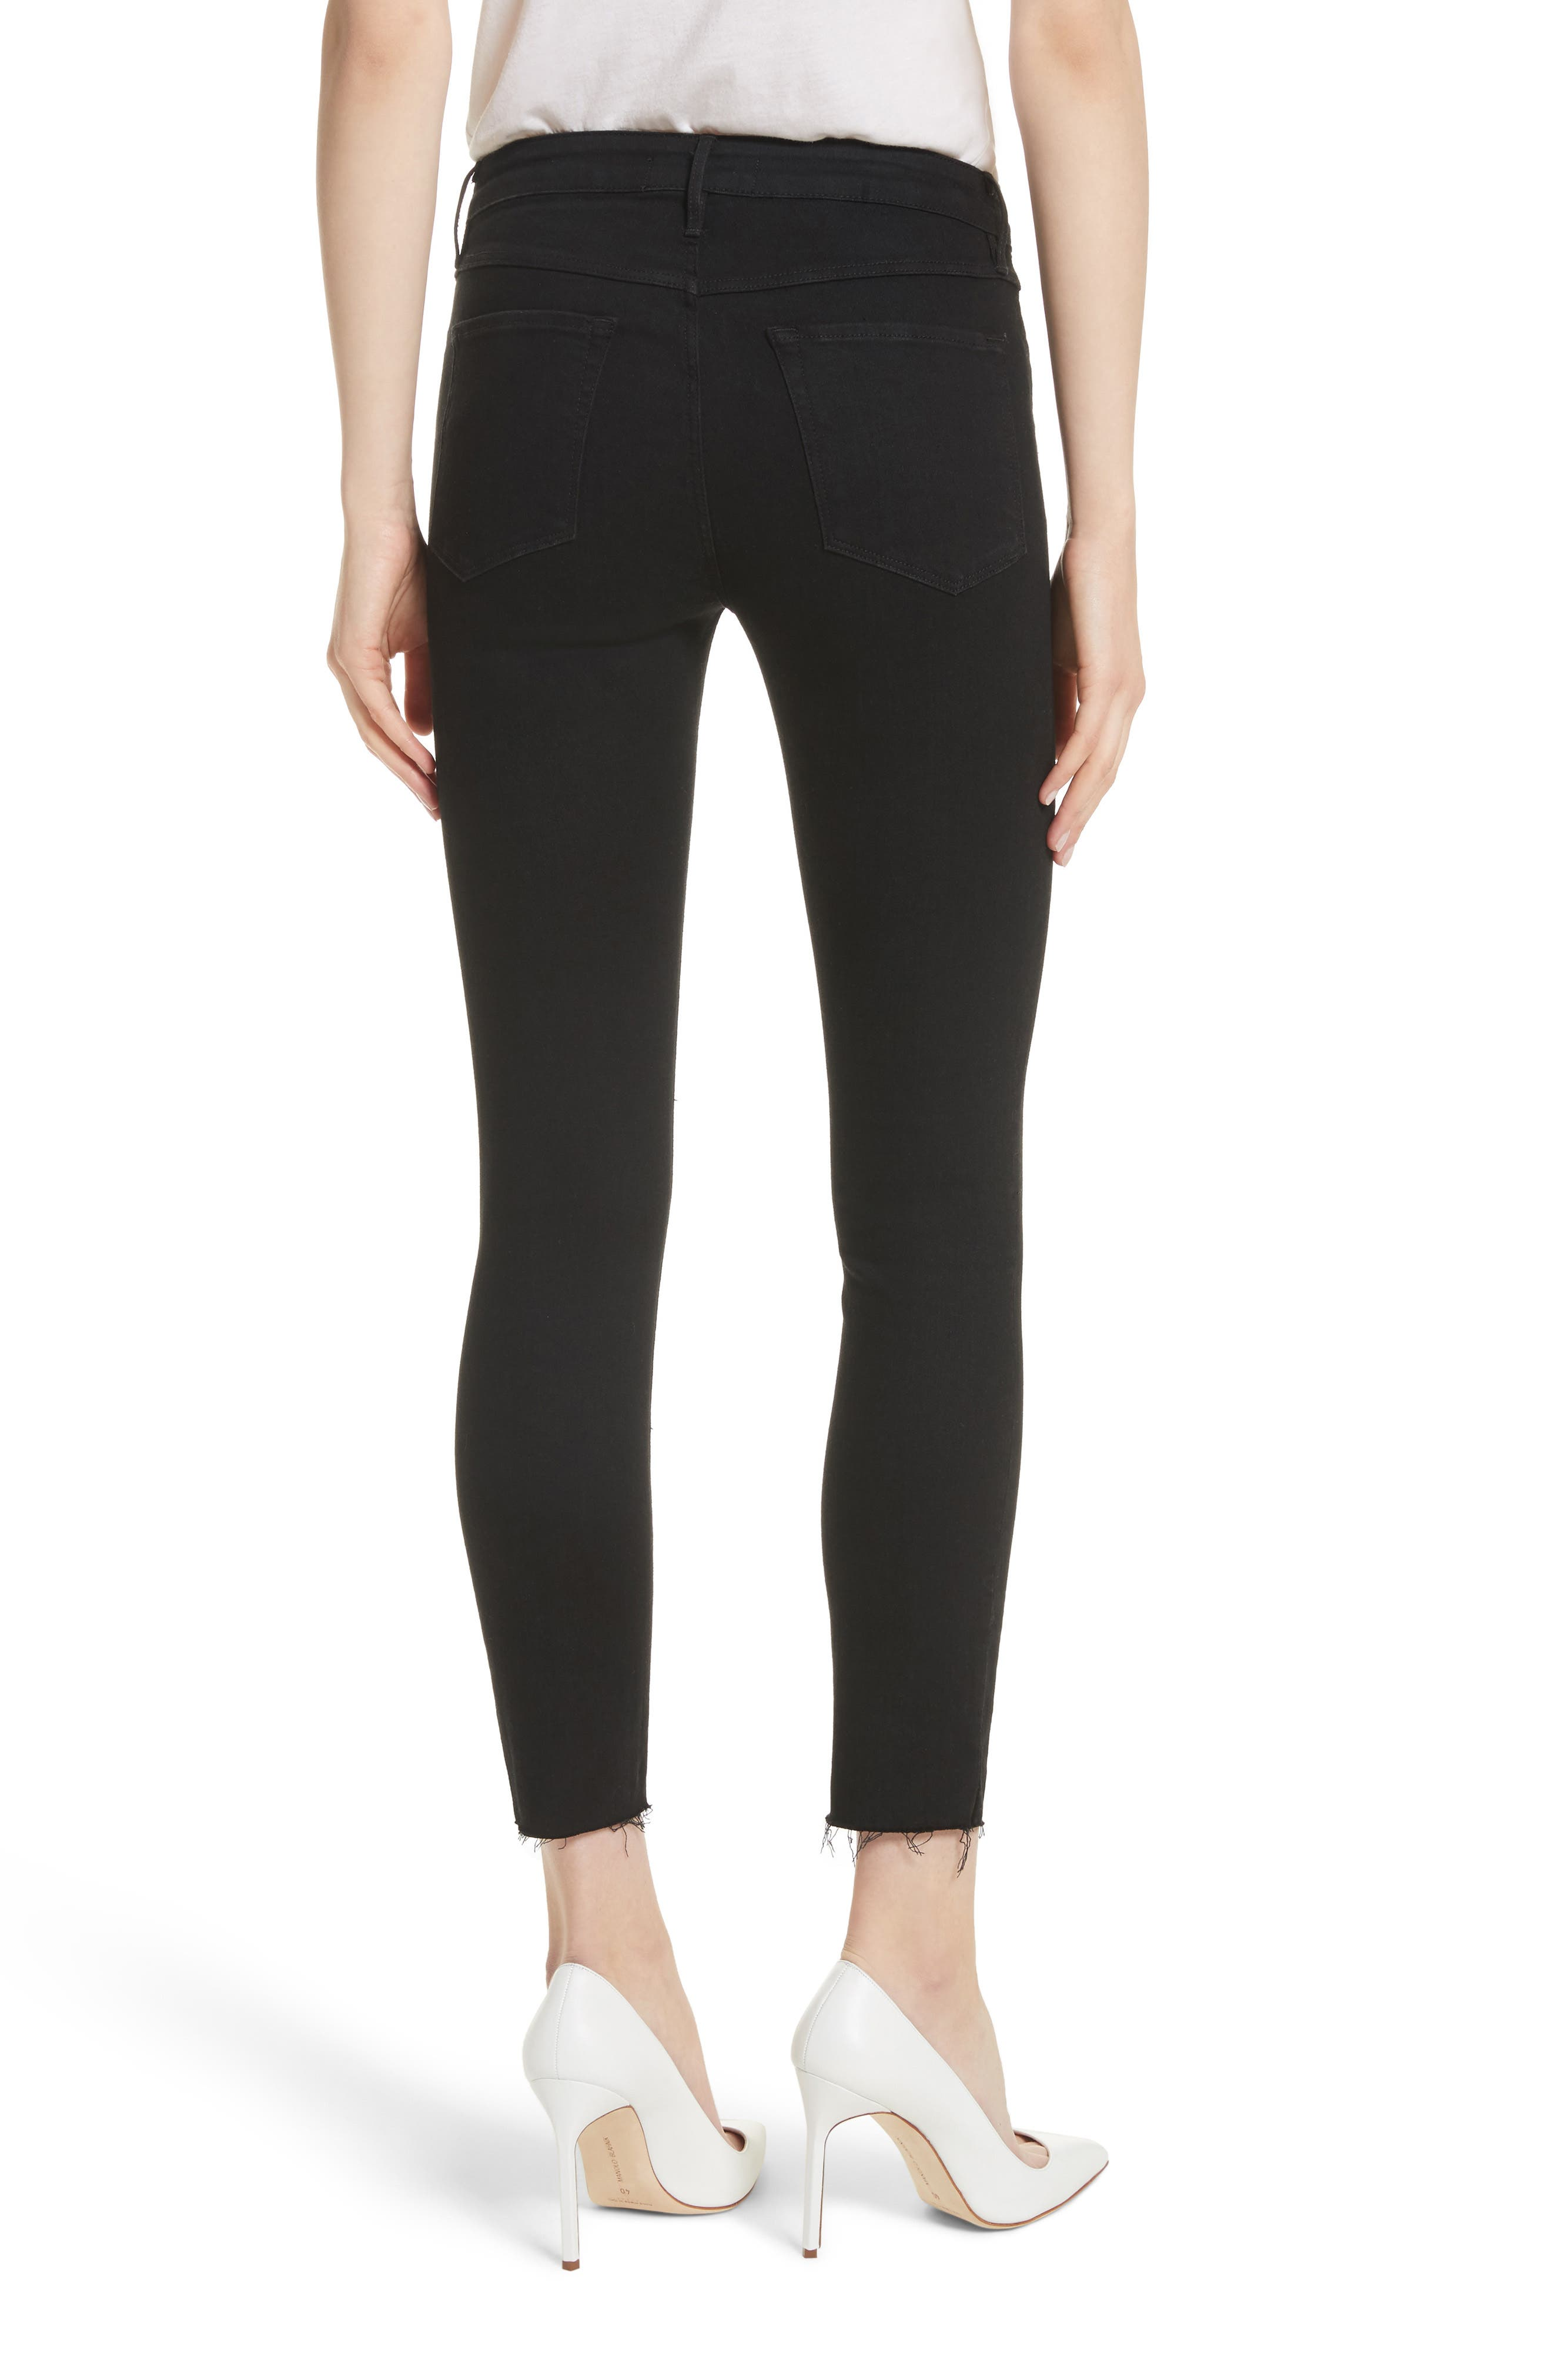 W2 Crop Skinny Jeans,                             Alternate thumbnail 2, color,                             BLACK TEAR